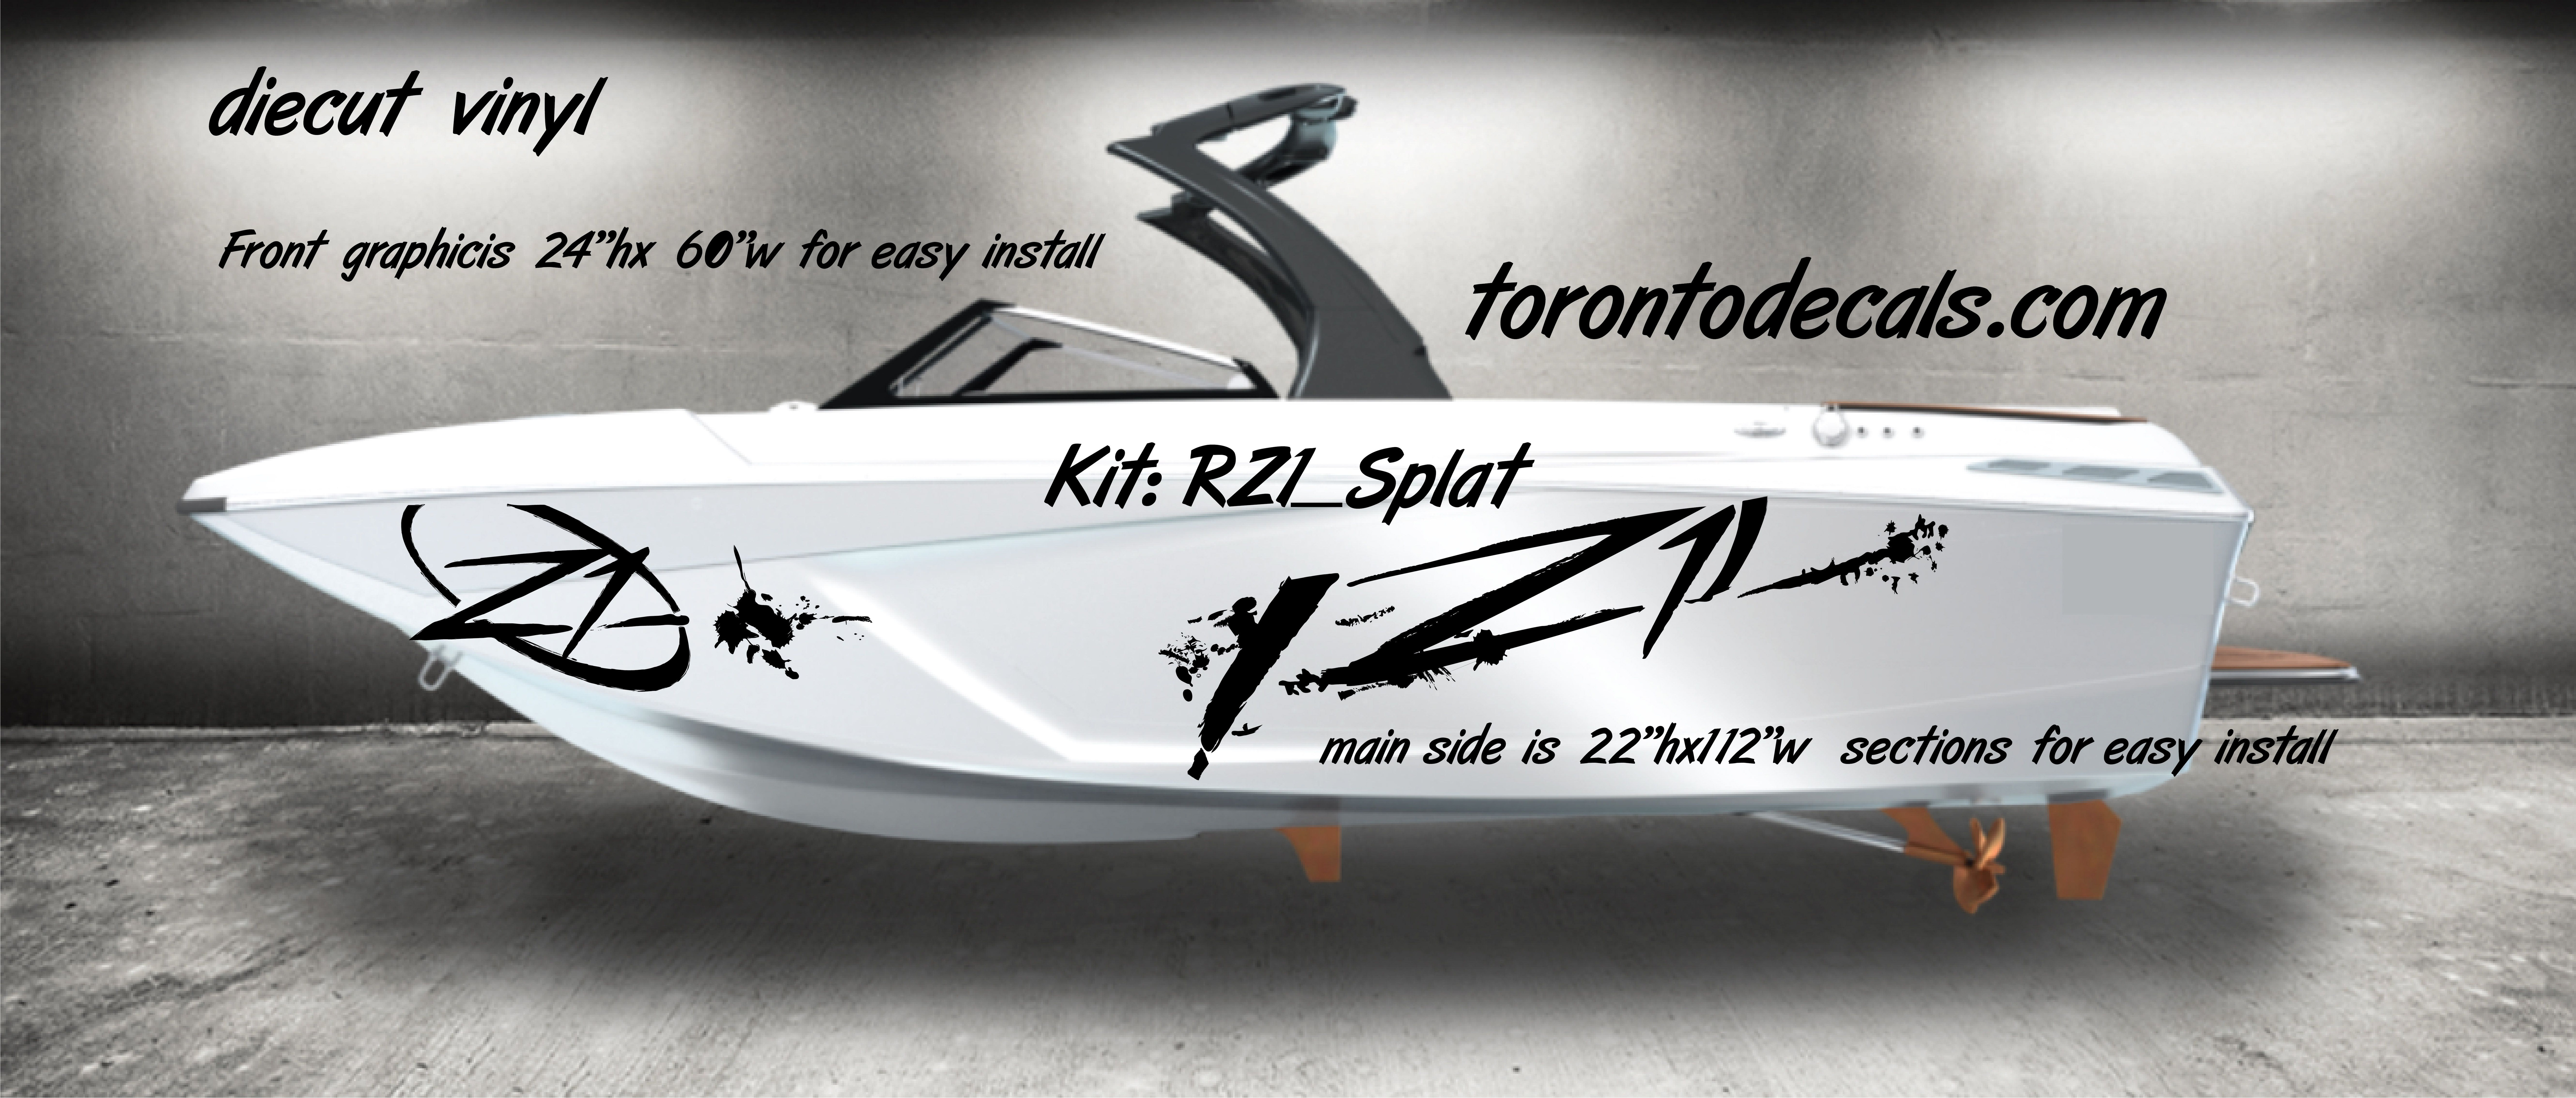 Upgrade Your Ols Tige Boat Graphics With Anew Z1 Splatter Kit From Us Contains 4 Sts Of Decals 2 For Ea Side Comes Premask Boat Decals Graphic Kit Diy Vinyl